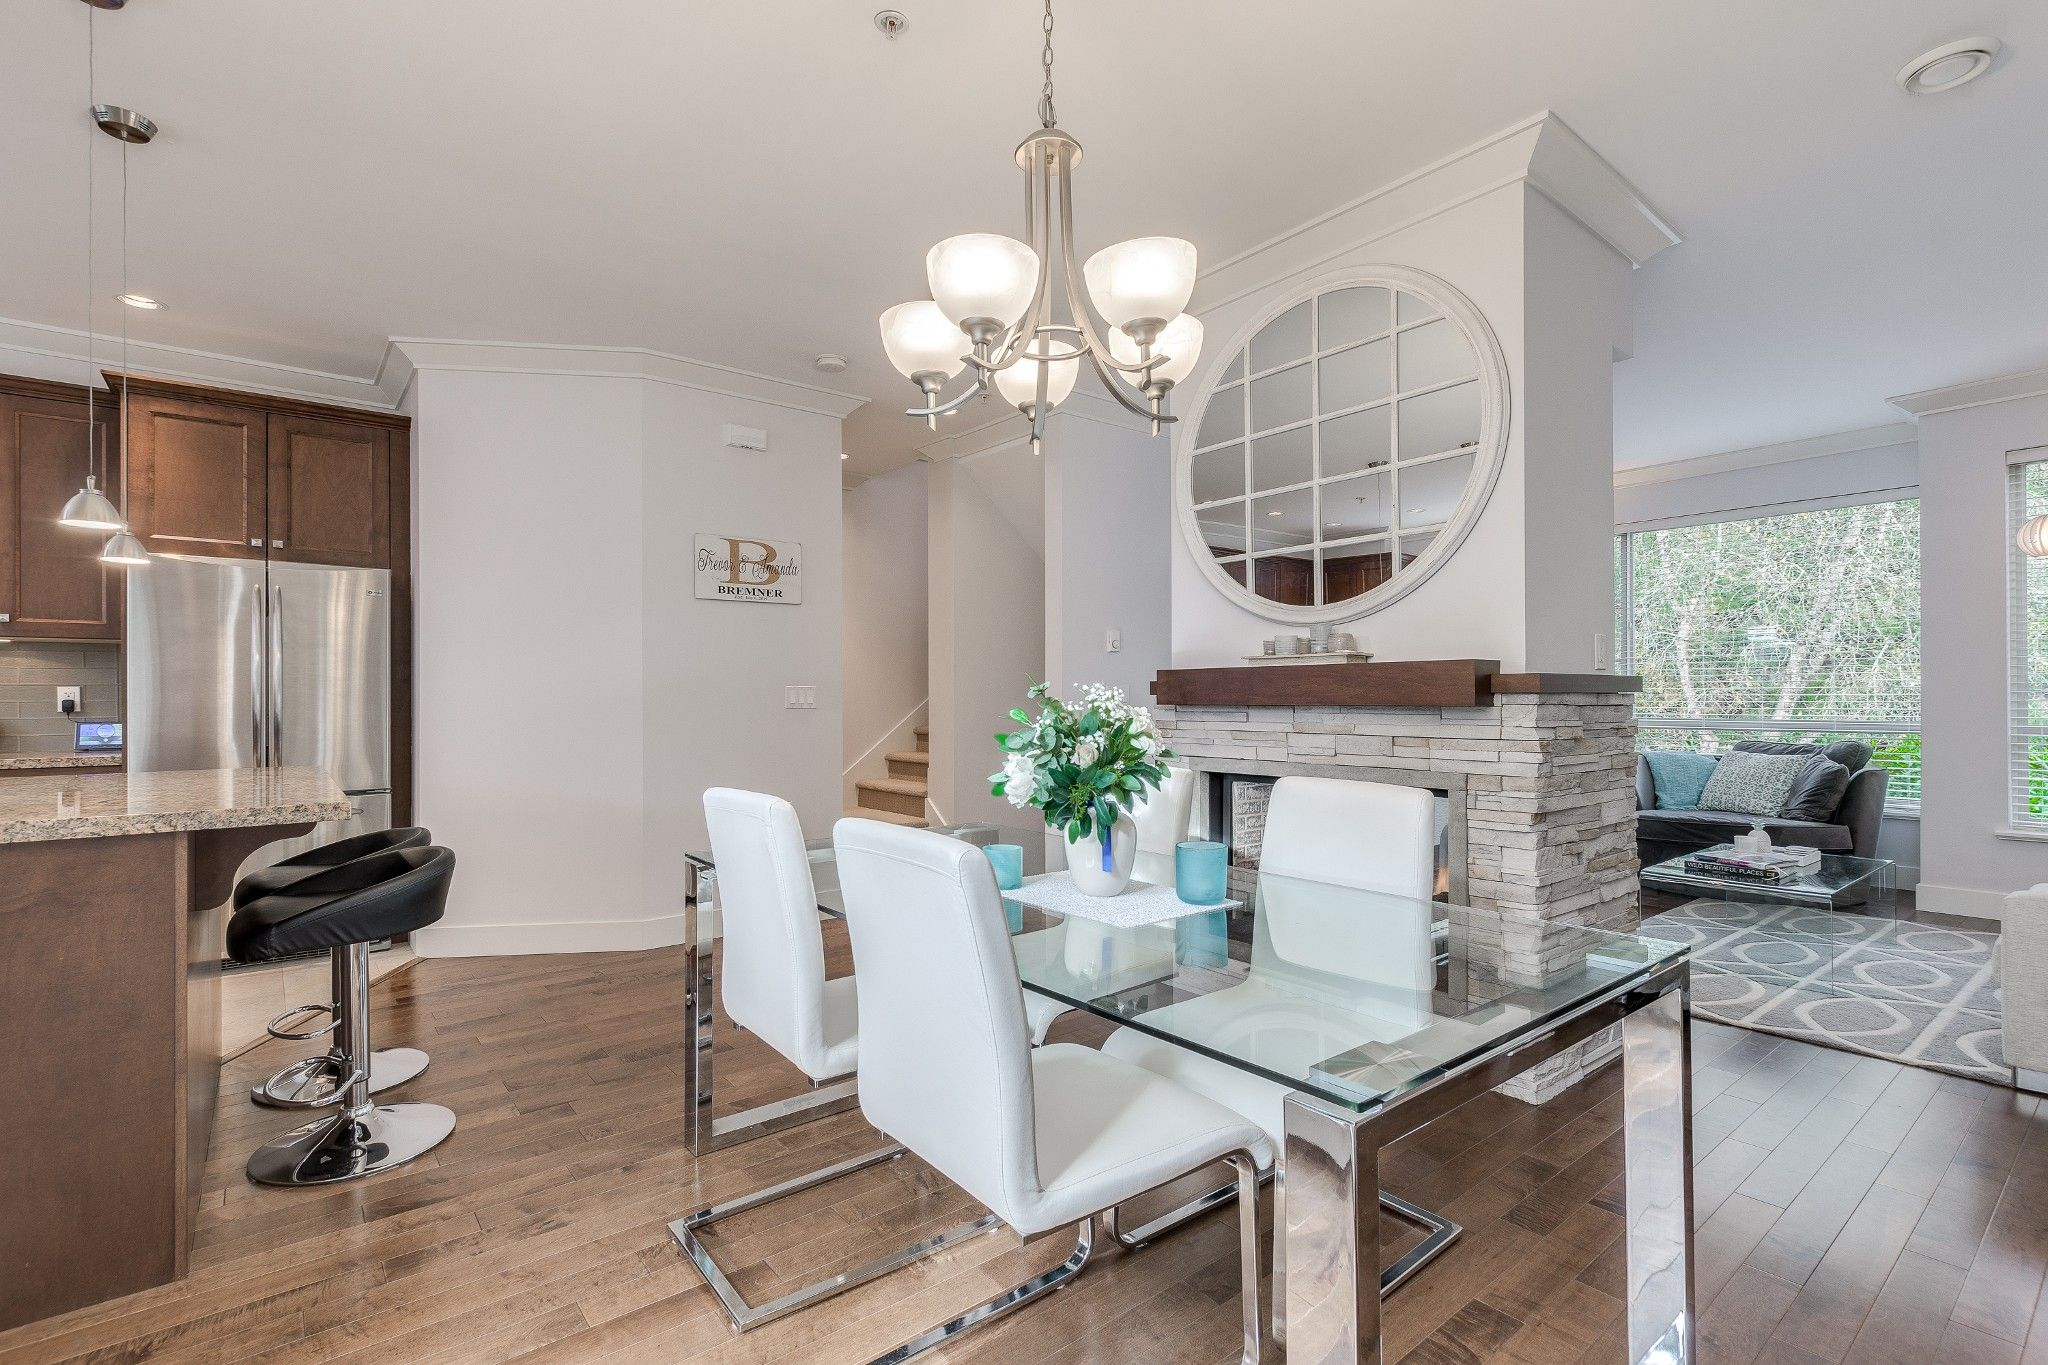 Photo 8: Photos: 24 897 Premier Street in : Lynnmour Townhouse for sale (North Vancouver)